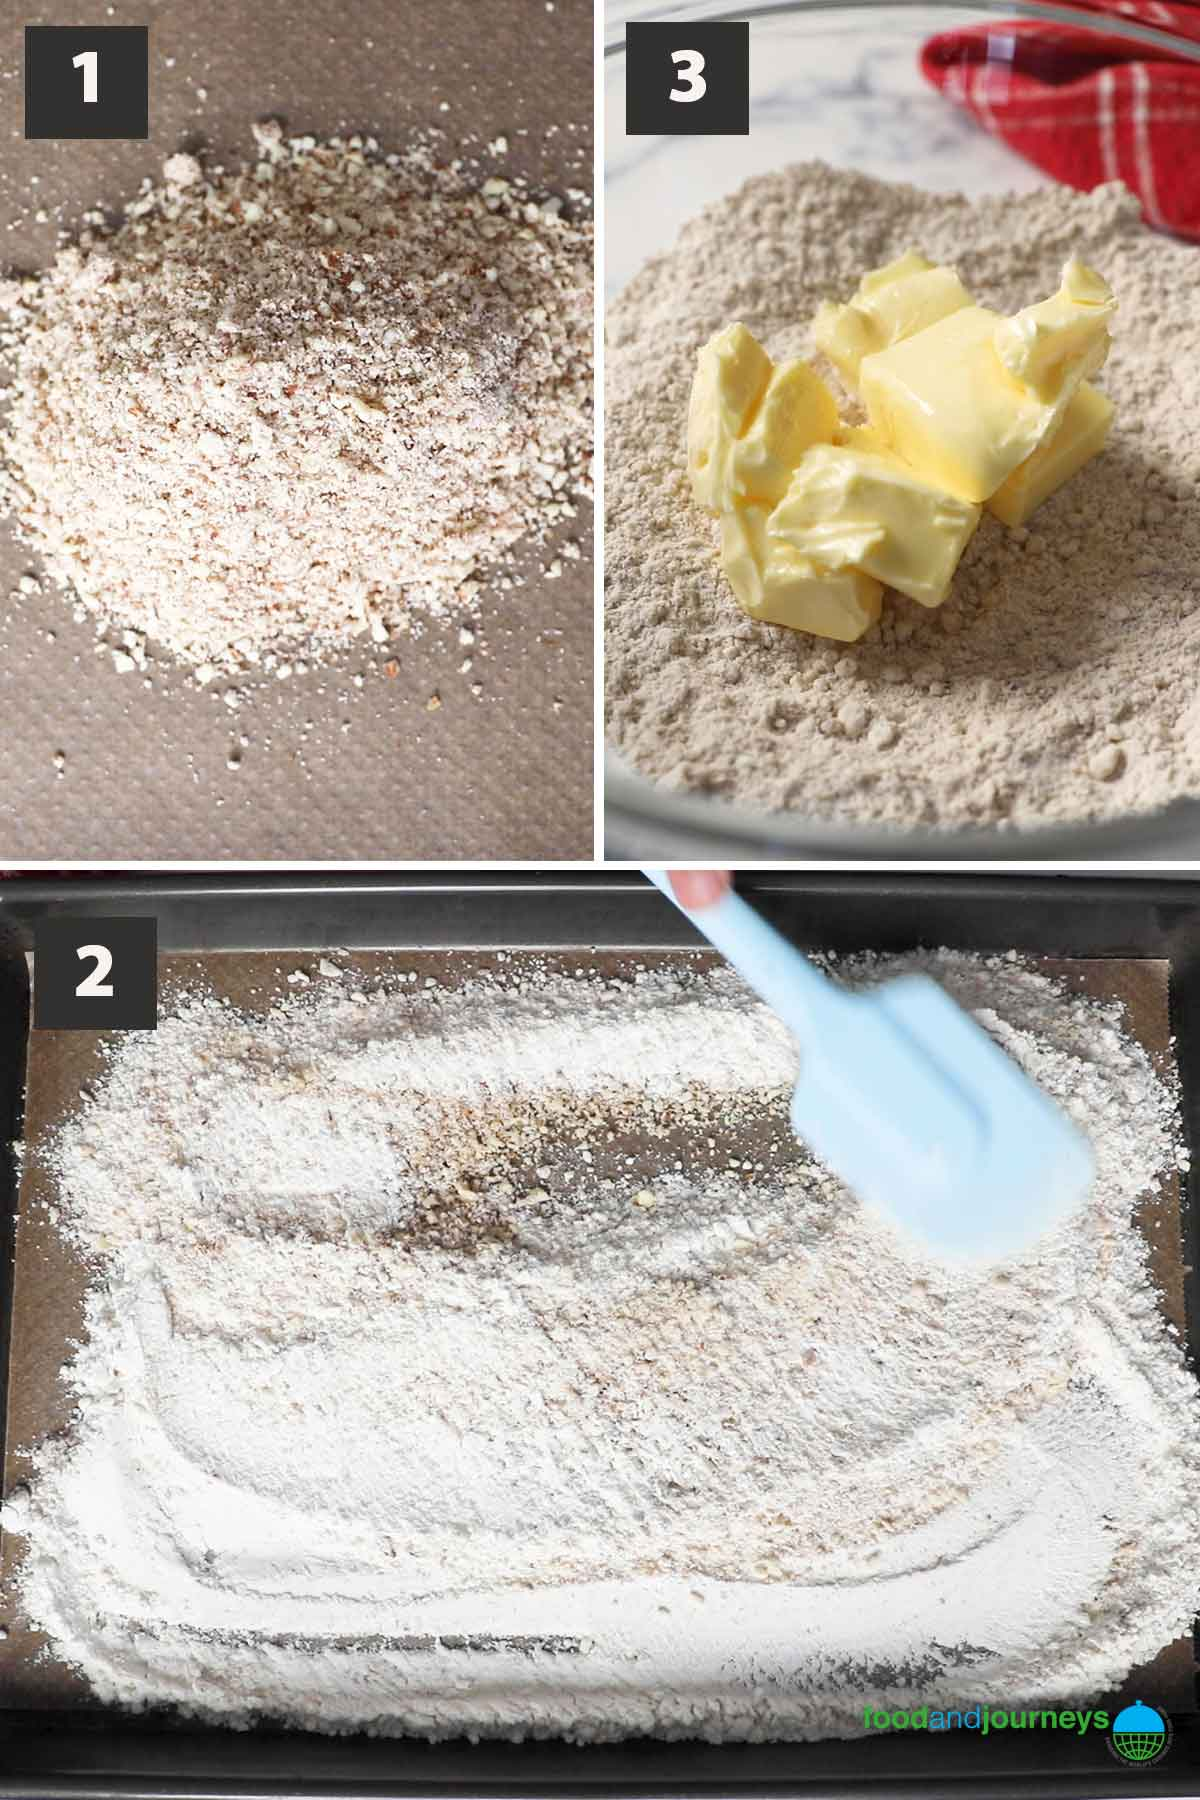 Latest, first part of a collage of images showing the step by step process of making polvorones at home.